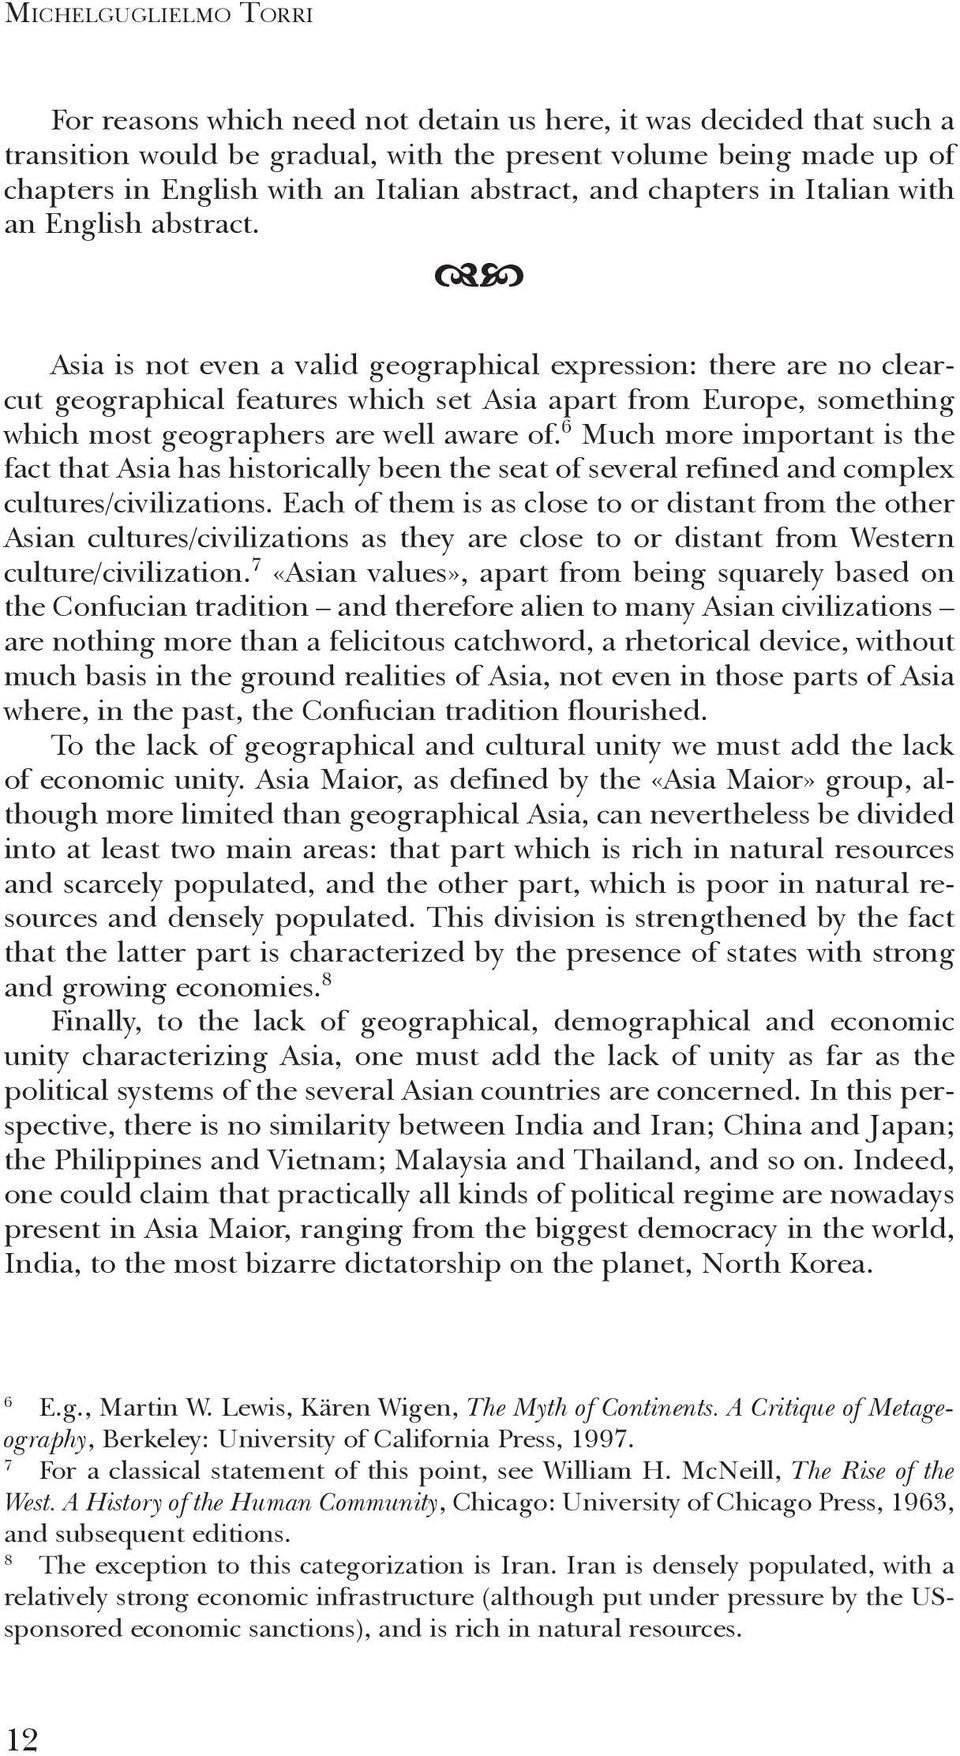 Asia is not even a valid geographical expression: there are no clearcut geographical features which set Asia apart from Europe, something which most geographers are well aware of.